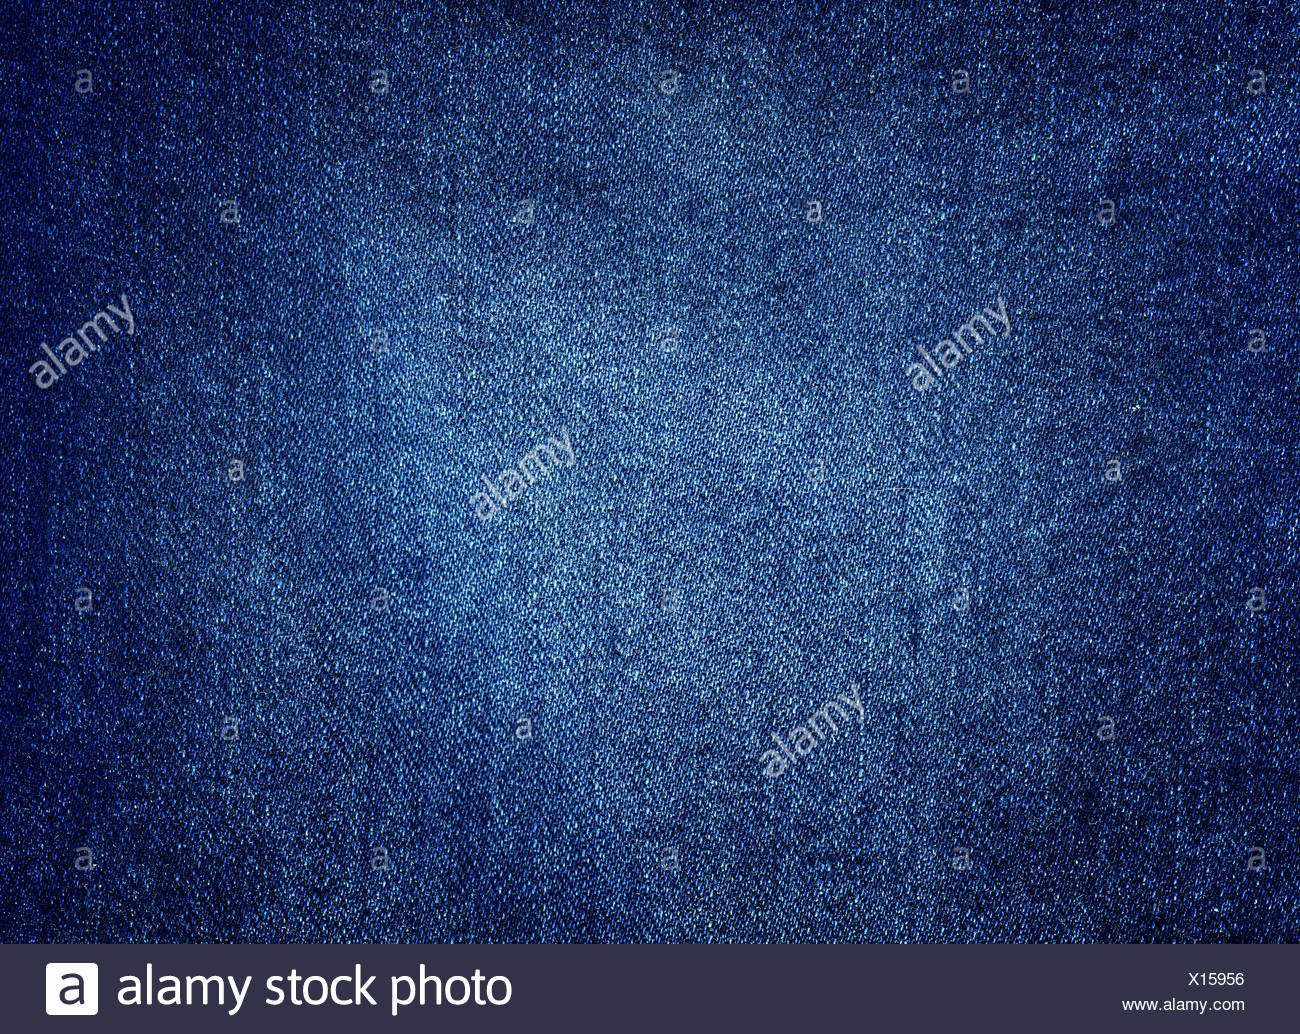 Denim jeans background - Stock Image